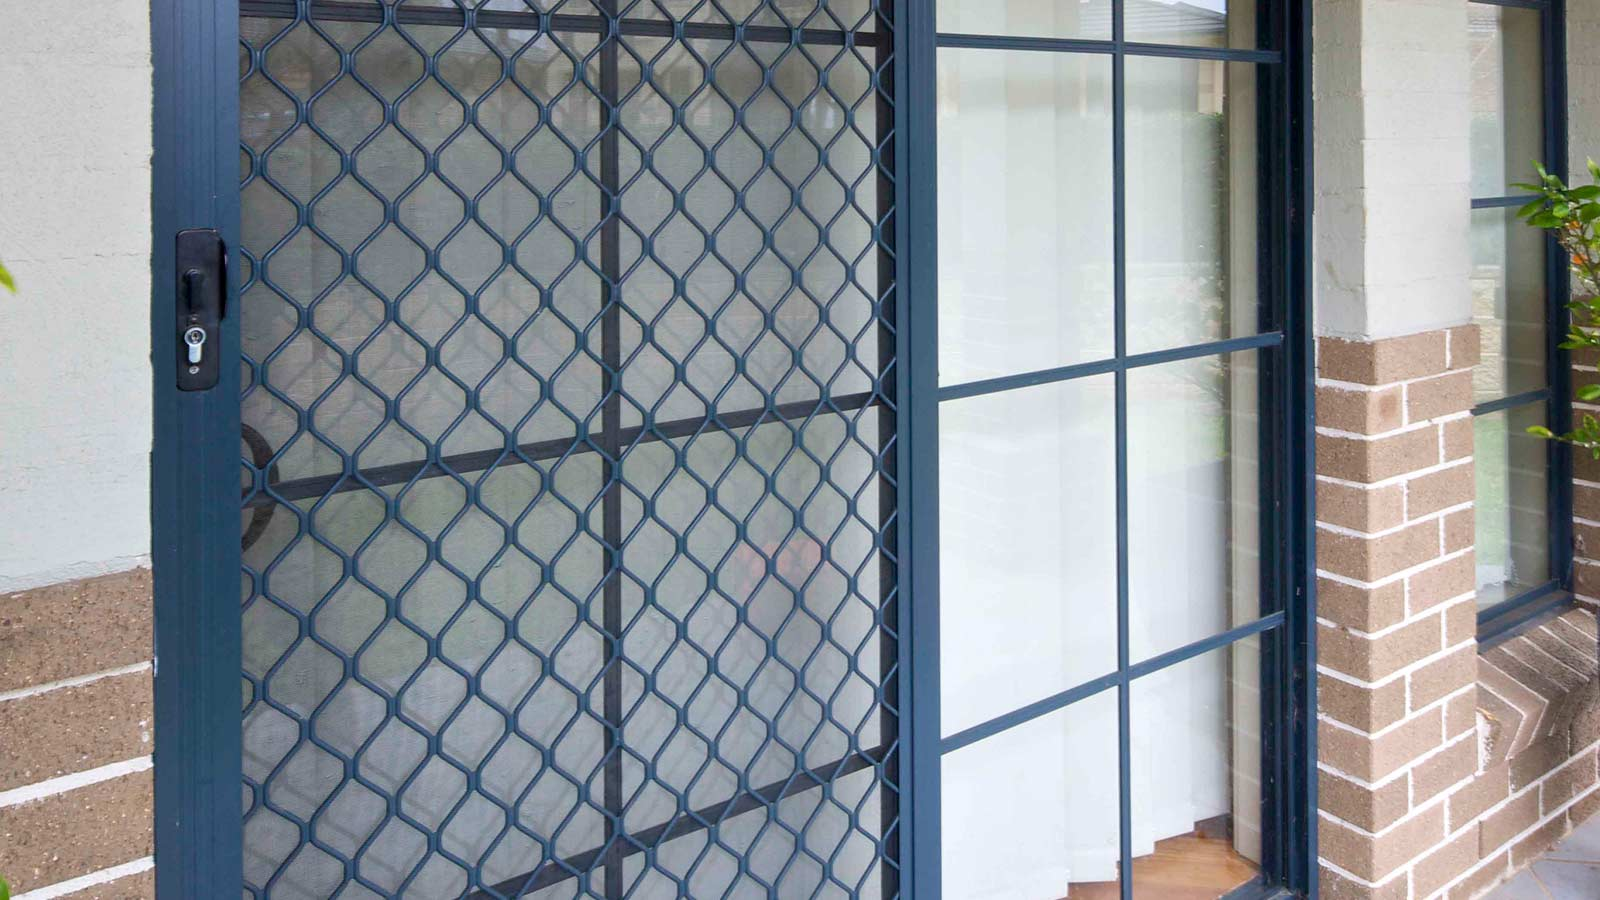 Diamond Grille Security Screens And Doors Atlas Awnings